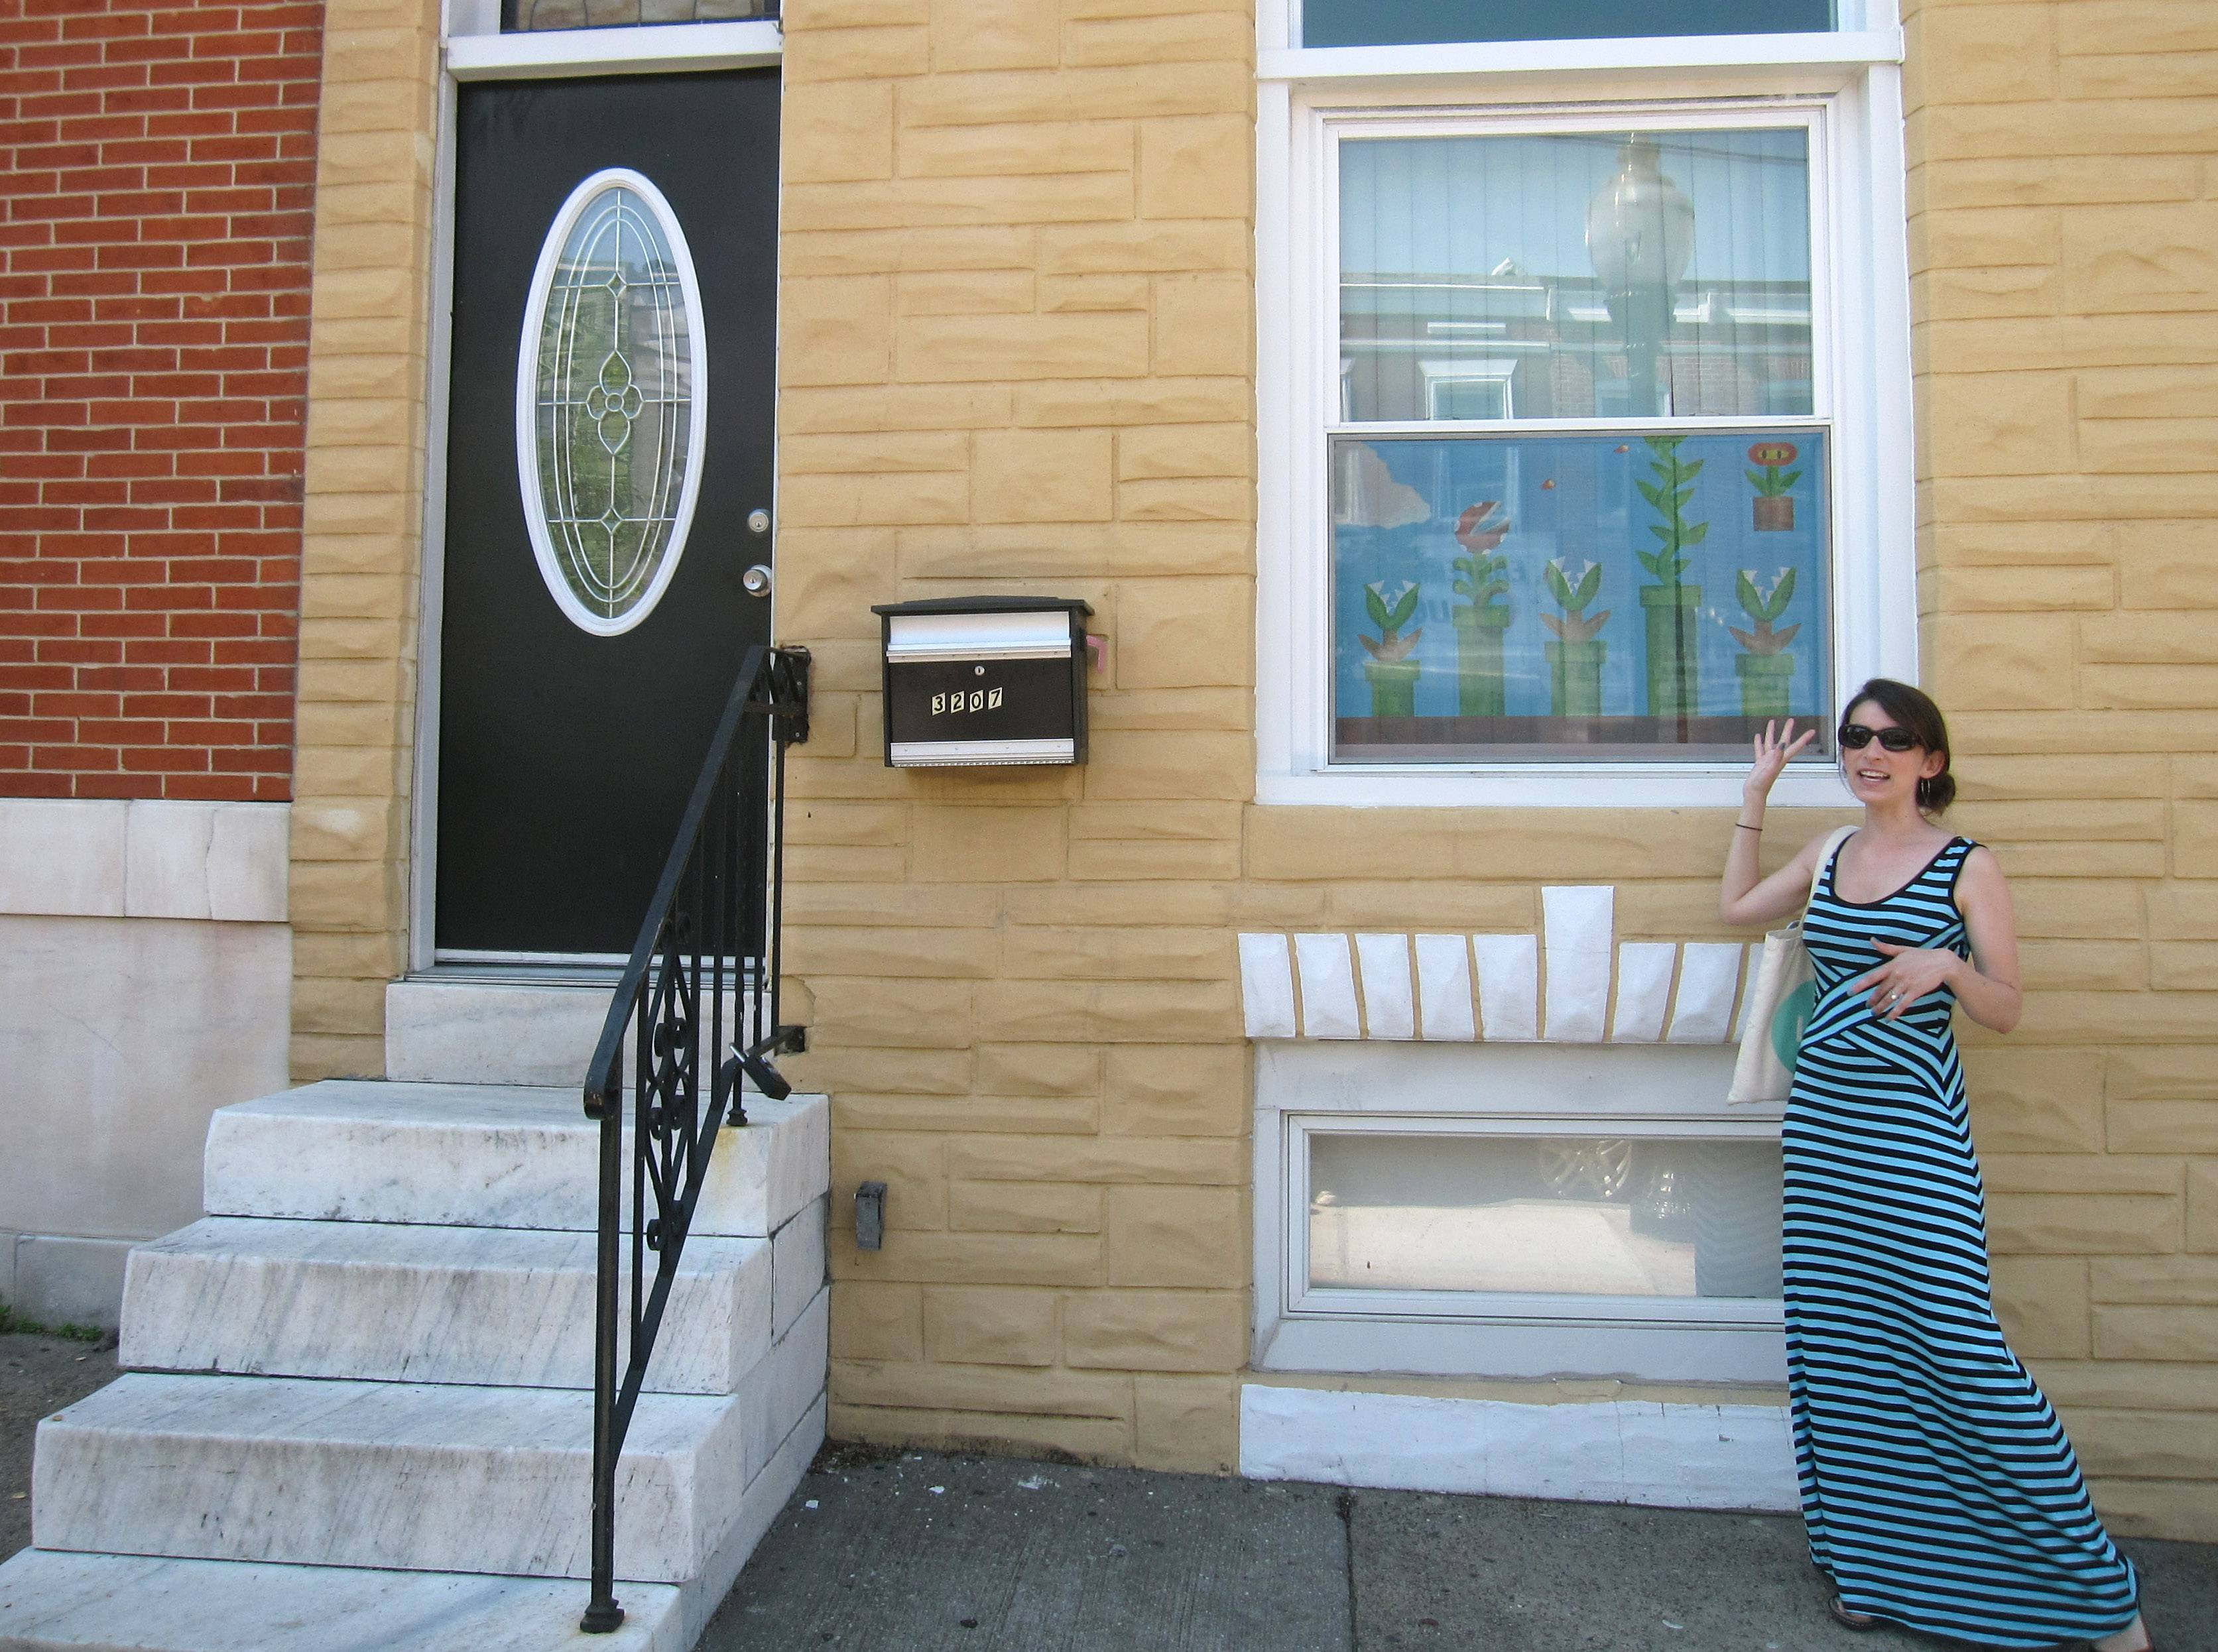 Amanda Smit-Peters shows an example of painted window screens in the Highlandtown neighborhood of Baltimore. Smit-Peters, Main Street manager for the neighborhood, is working with local artists to bring back the urban folk art of painted screens. They were popular in the 20th century as a way to keep people walking by on the street from seeing inside Baltimore's row house windows.